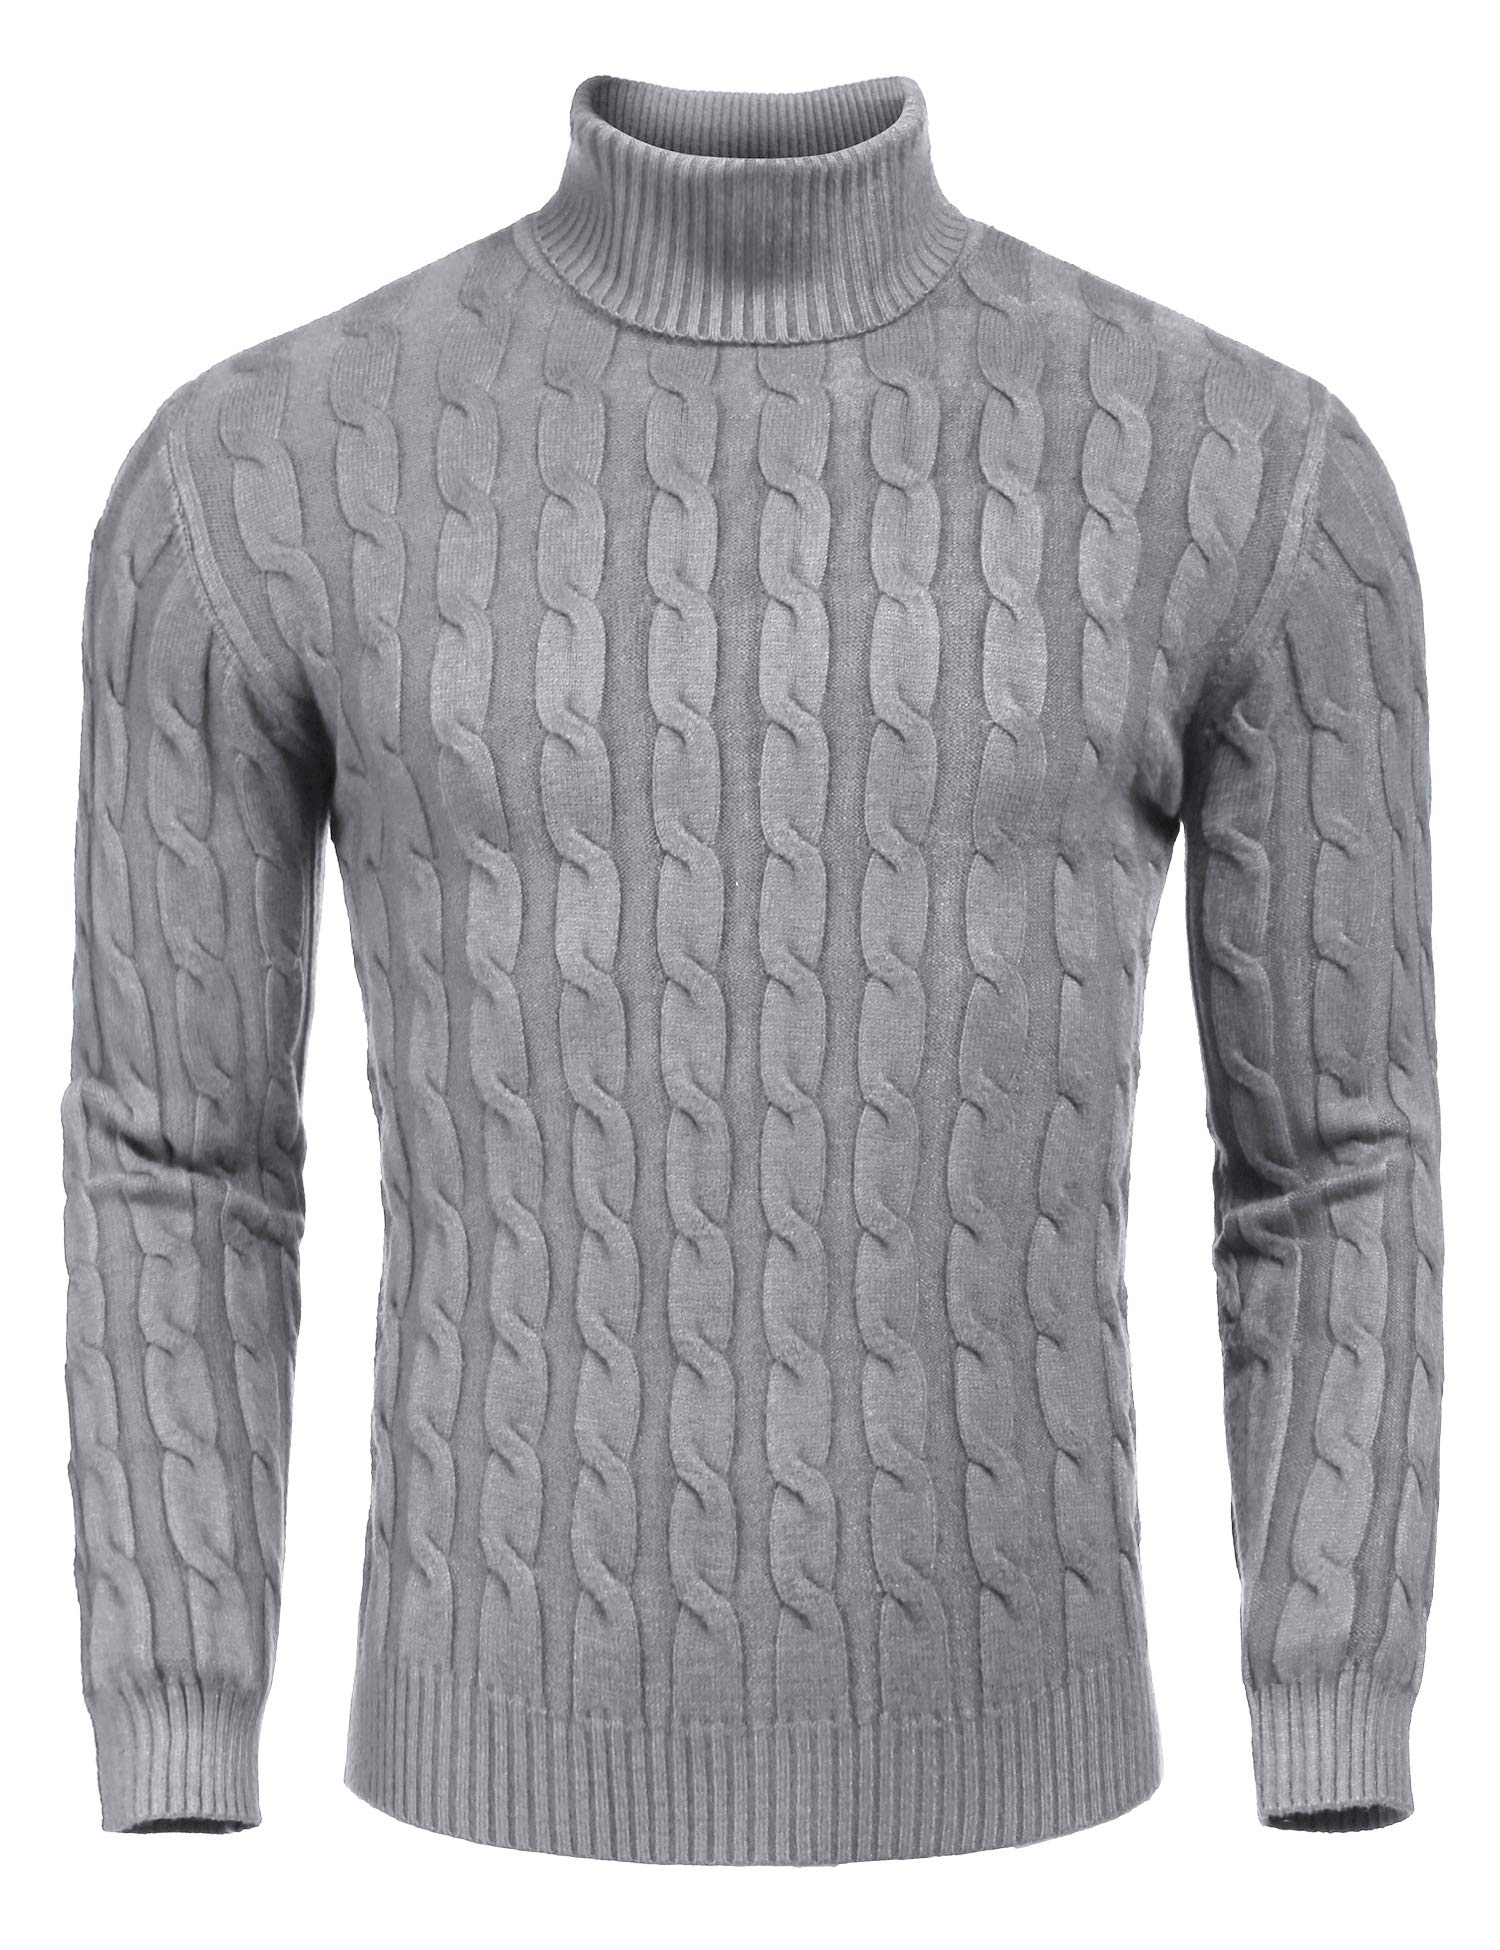 COOFANDY Men's Slim Fit Turtleneck Sweater Casual Twisted Knitted Pullover Sweaters